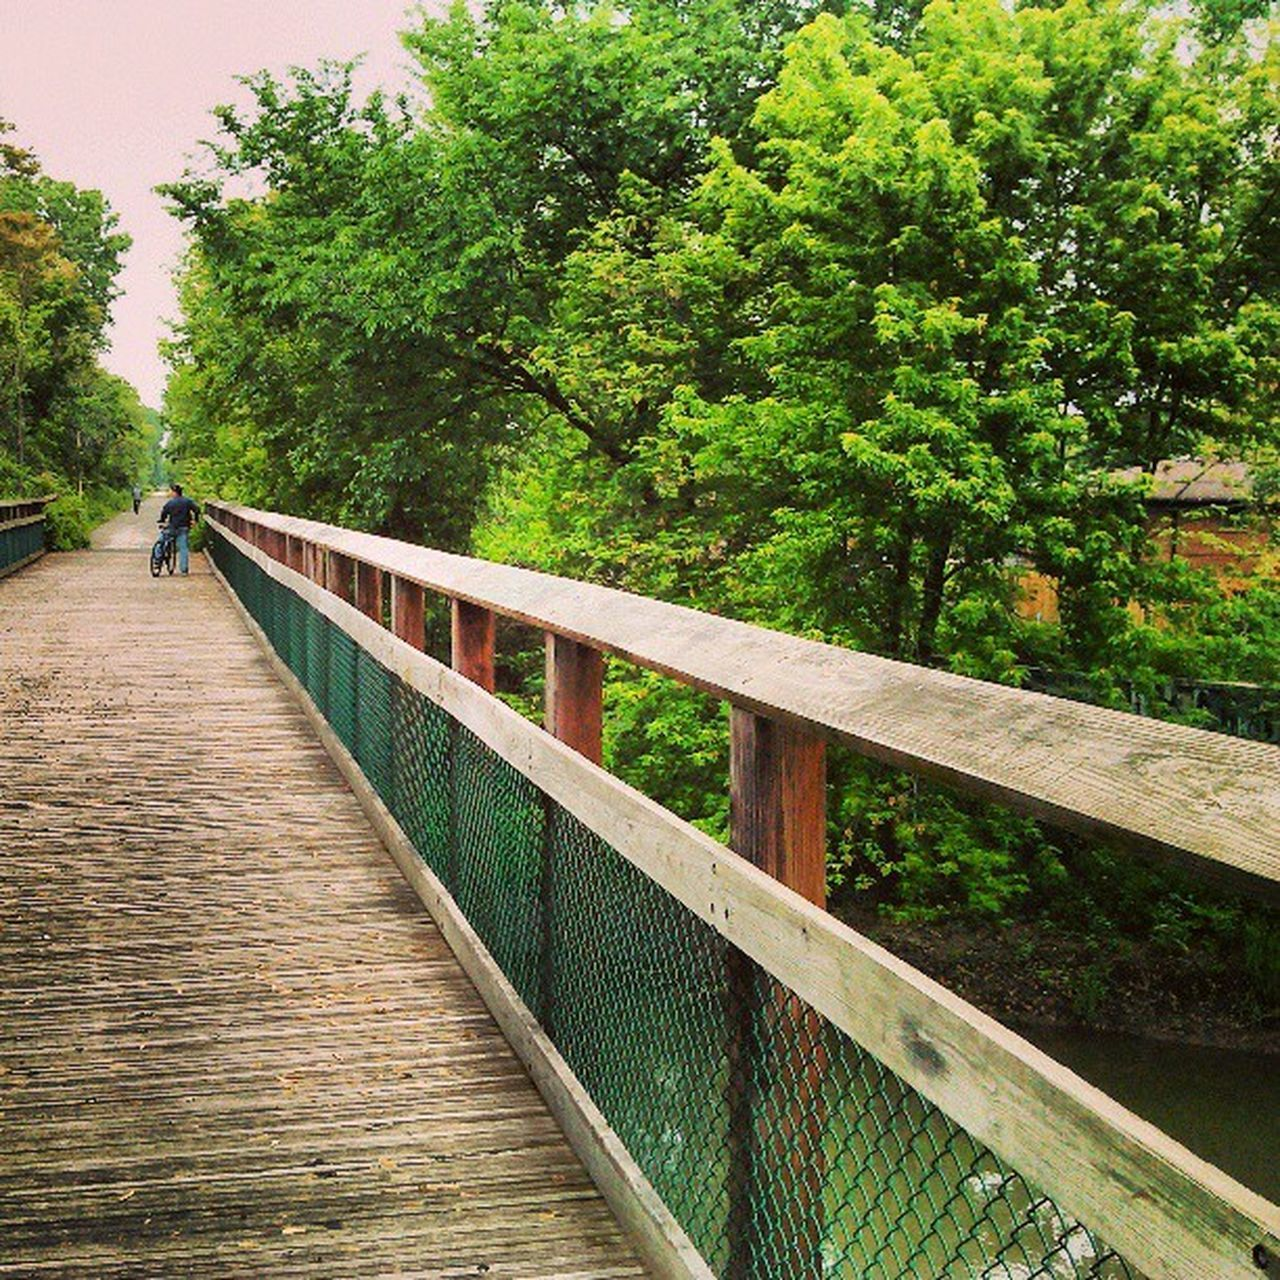 tree, railing, nature, green color, wood - material, day, outdoors, beauty in nature, footbridge, no people, growth, water, sky